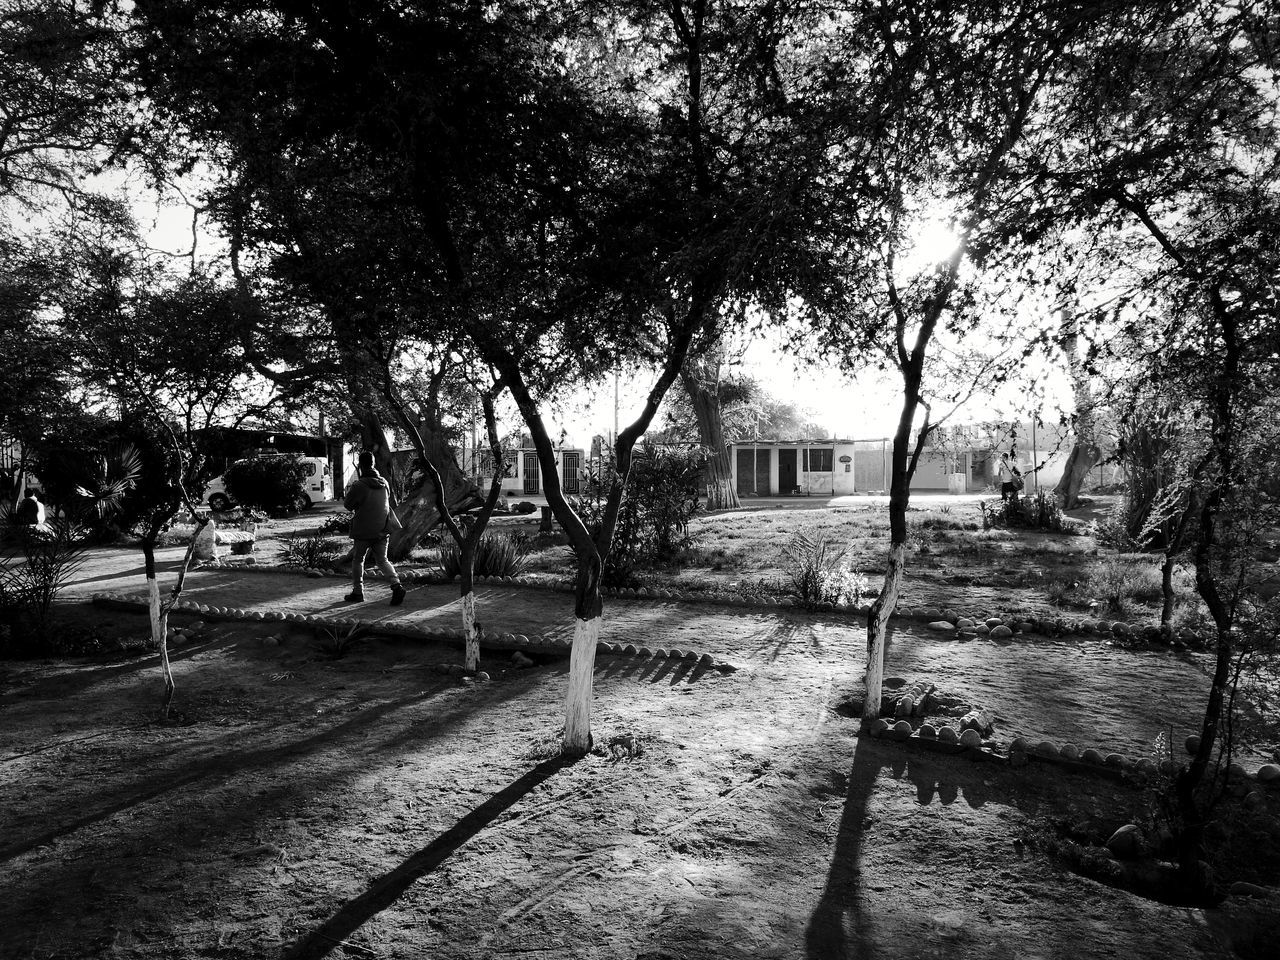 Garden in Ica Tree Street Outdoors Day Building Exterior Shadow Built Structure No People Architecture Nature Branch City Sky Landscape_photography Fresh 3 Leica Huawei P9 Eye4photography  EyeEm Best Shots Blackandwhite Blancoynegro Biancoenero TreePorn